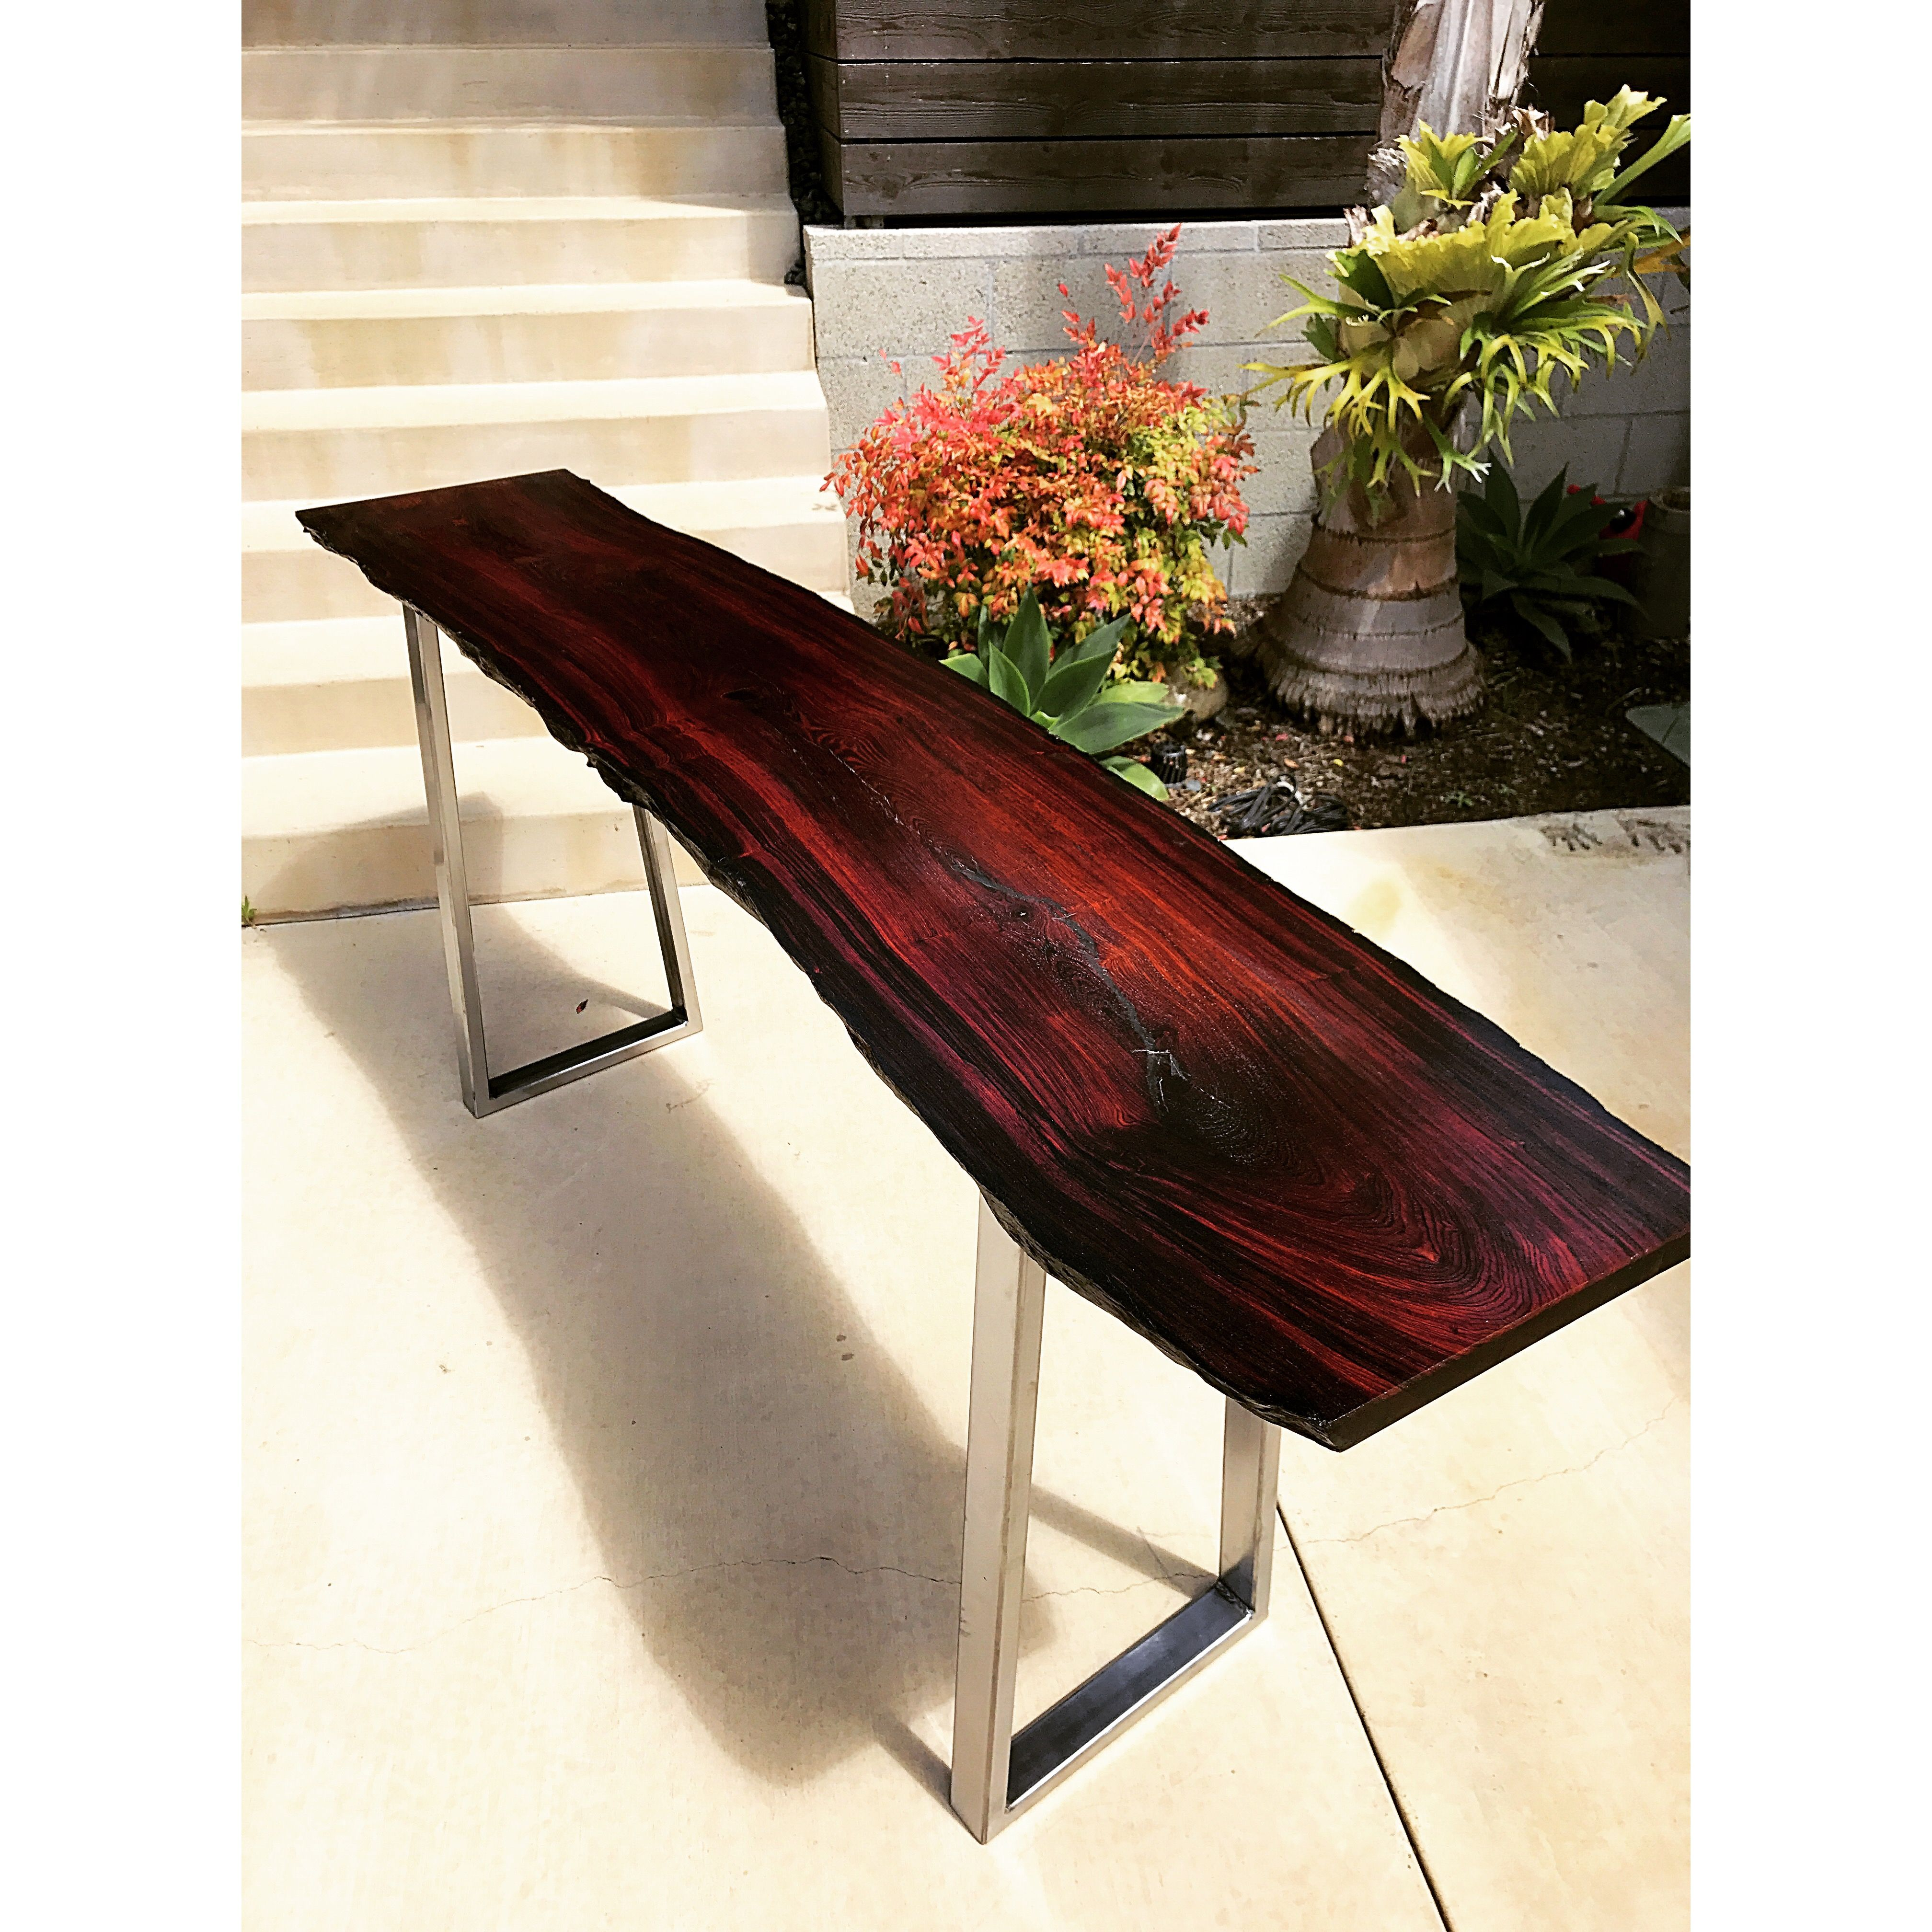 along light imports together inspiring concrete wood table lincoln and large splendid indooroutdoor sofa top of console shades outdoor tables pier images stunning thin furniture with glass tempered